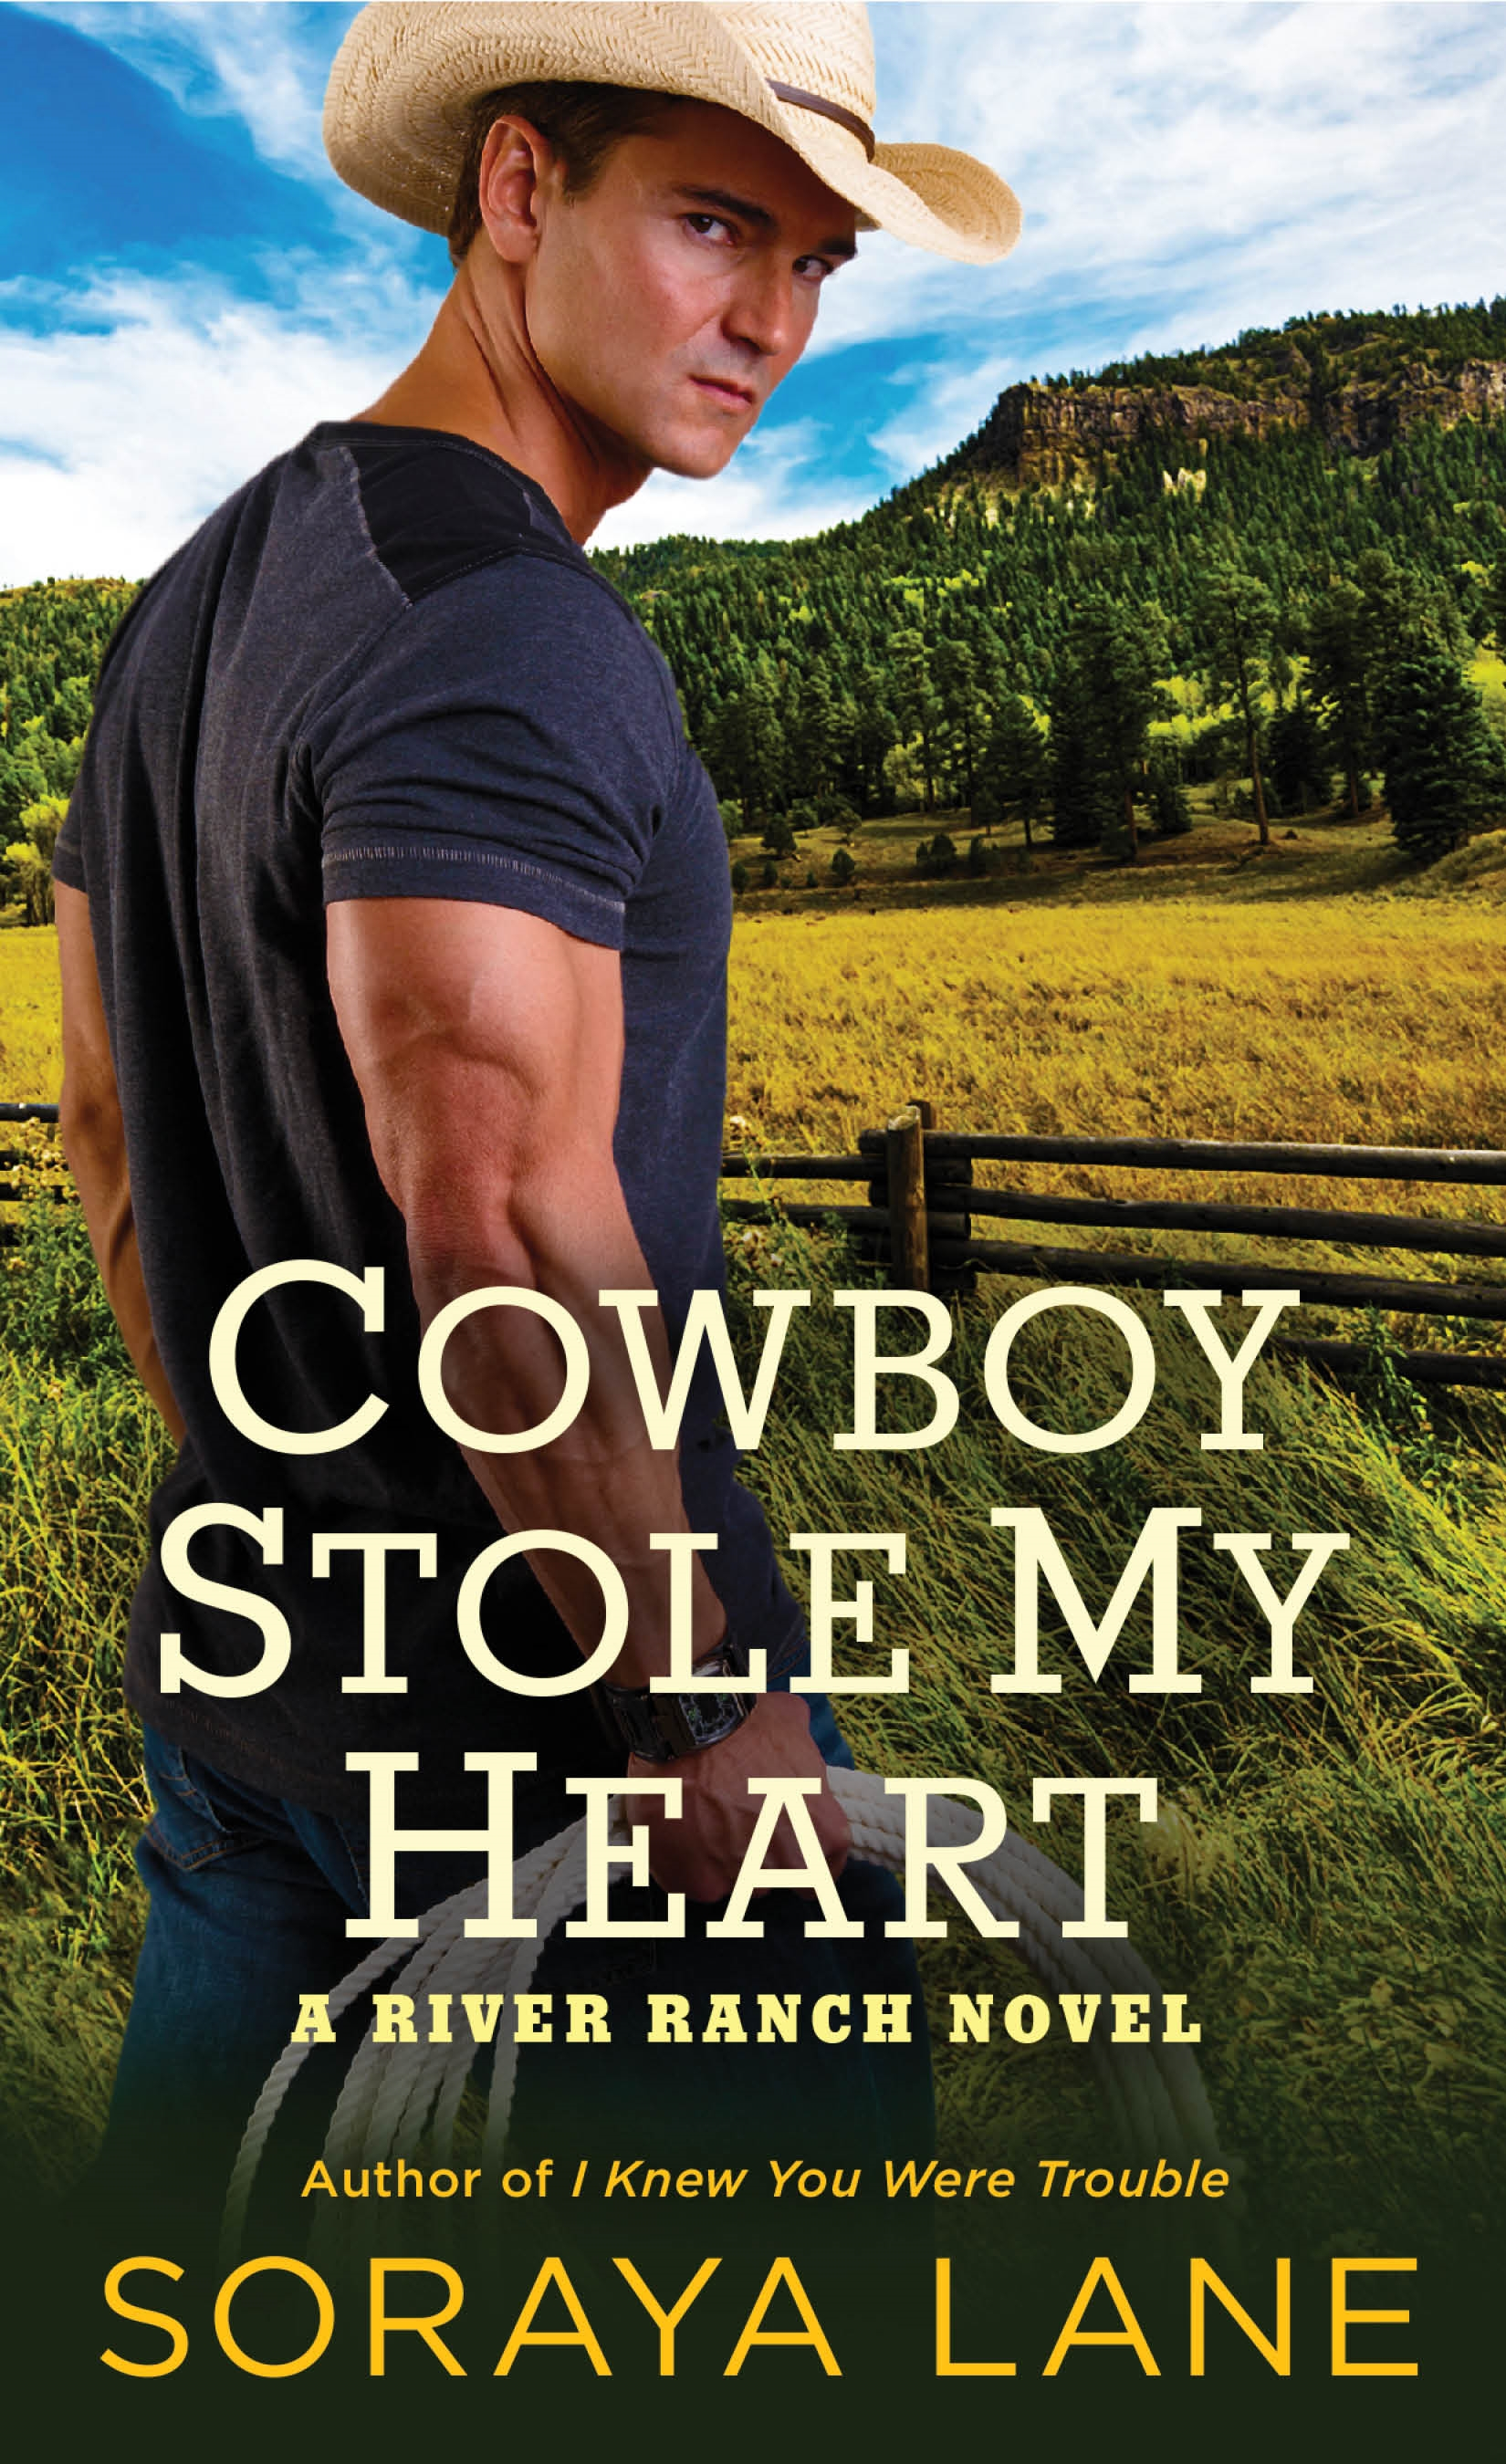 Blog Tour & Review: Cowboy Stole My Heart by Soraya Lane